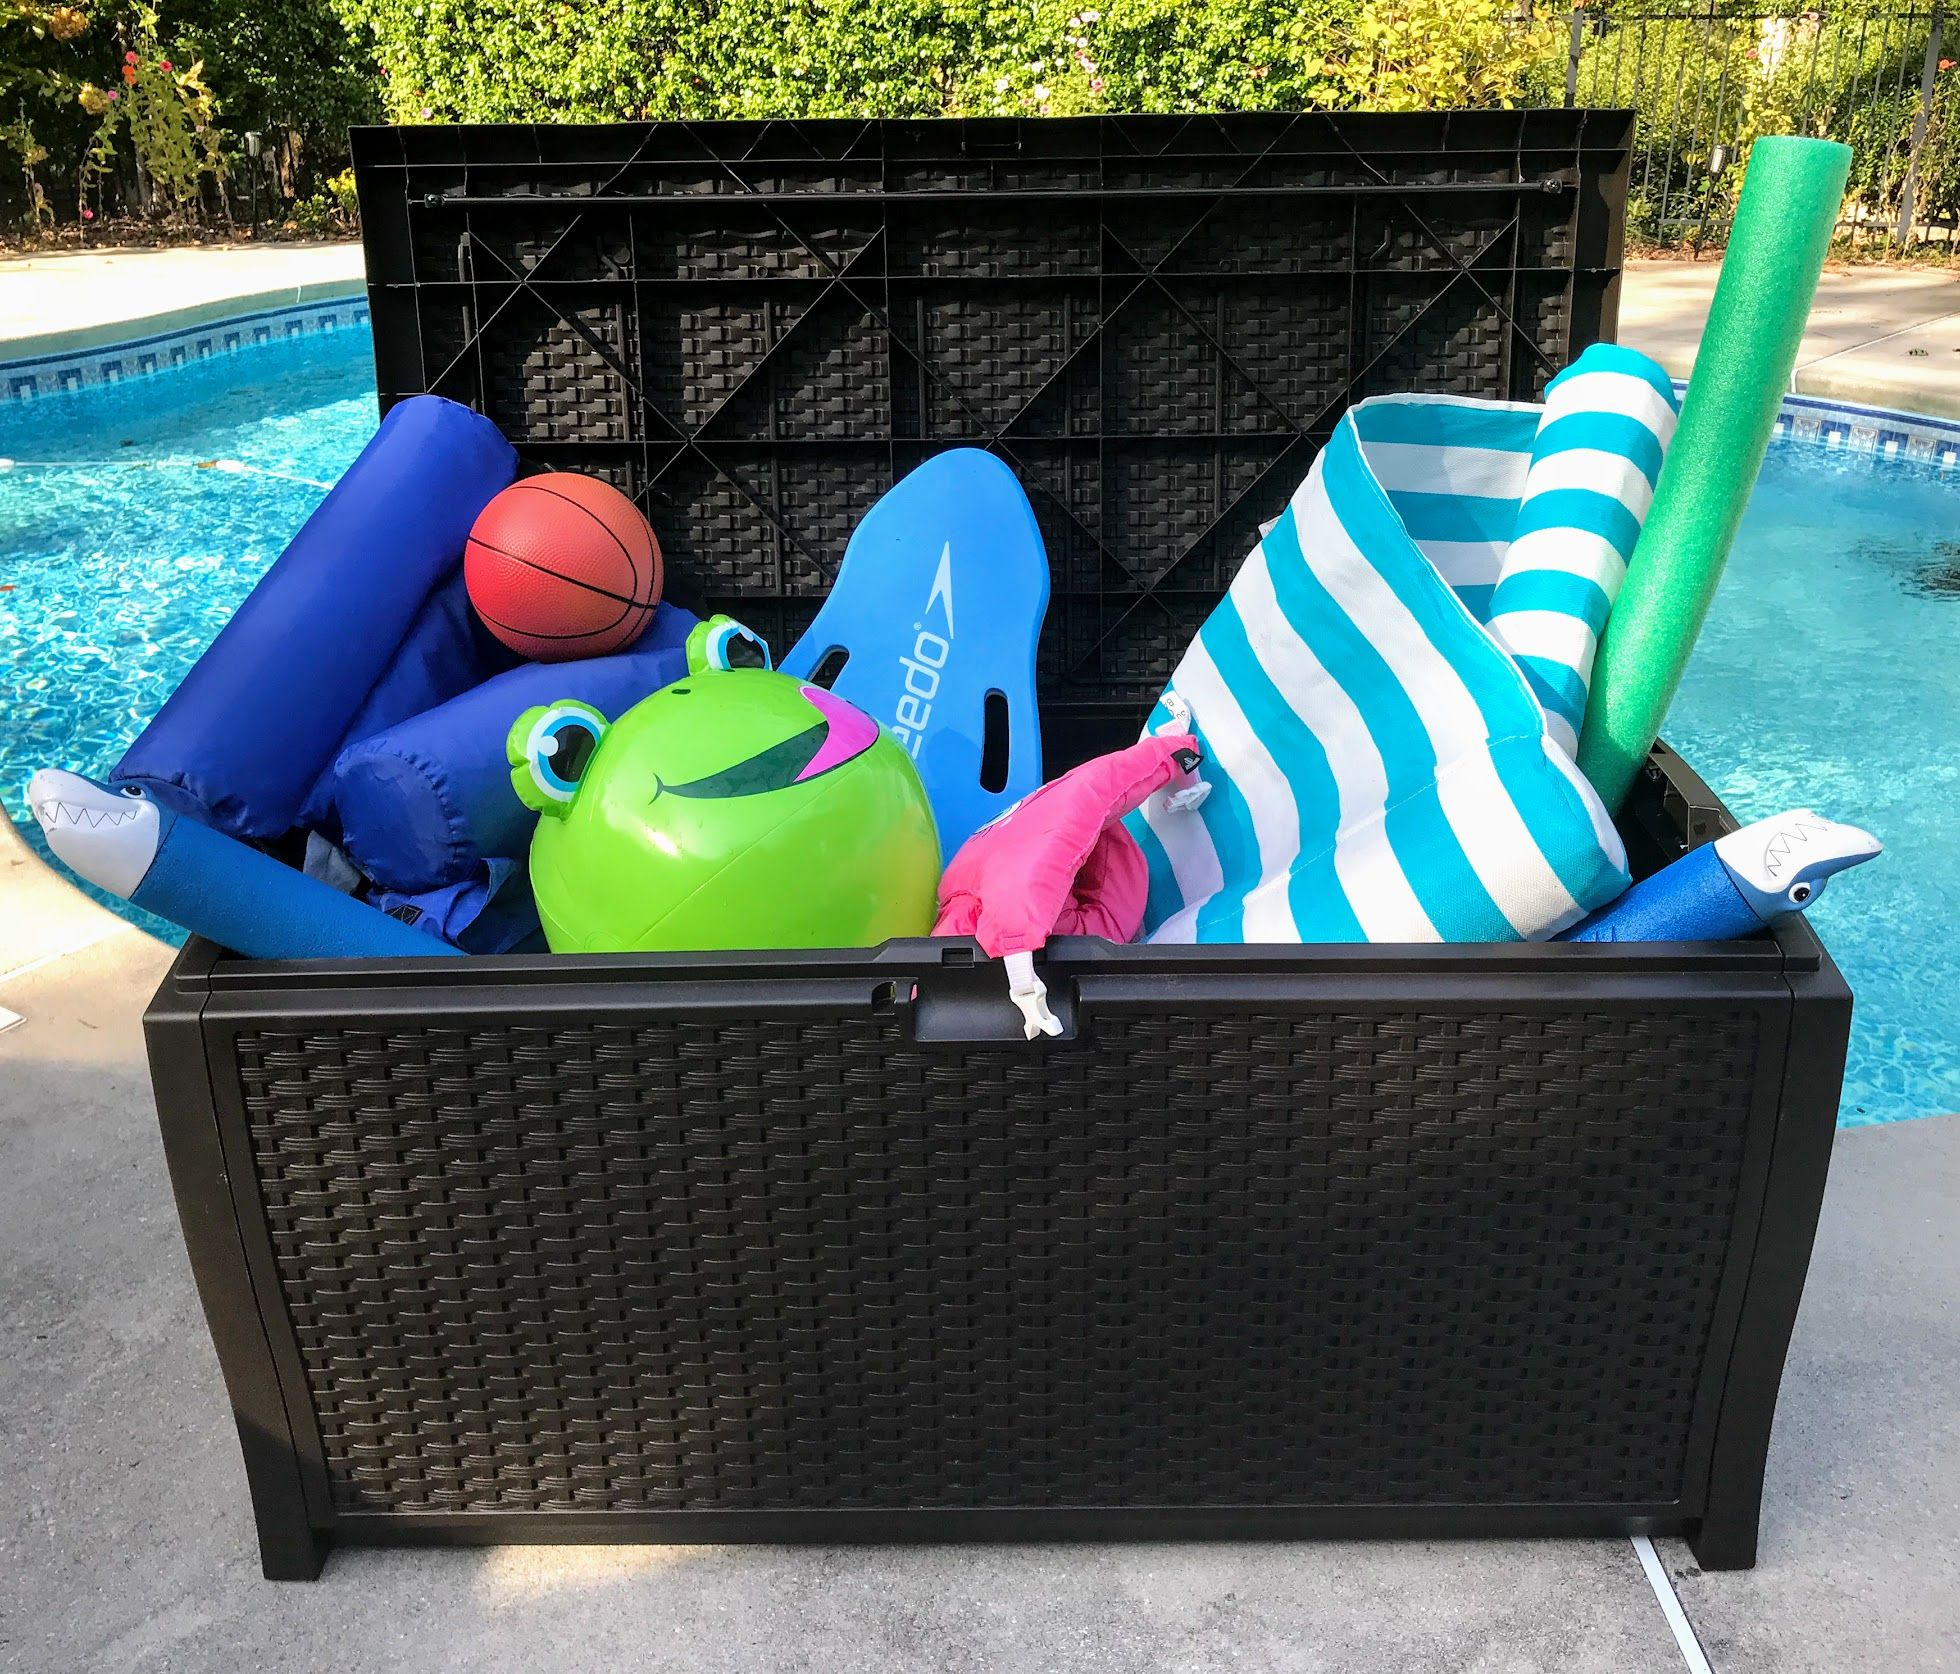 Pool Toy Storage Deck Boxes Float Organizers And More Pool Toy Storage Pool Toys Pool Float Storage